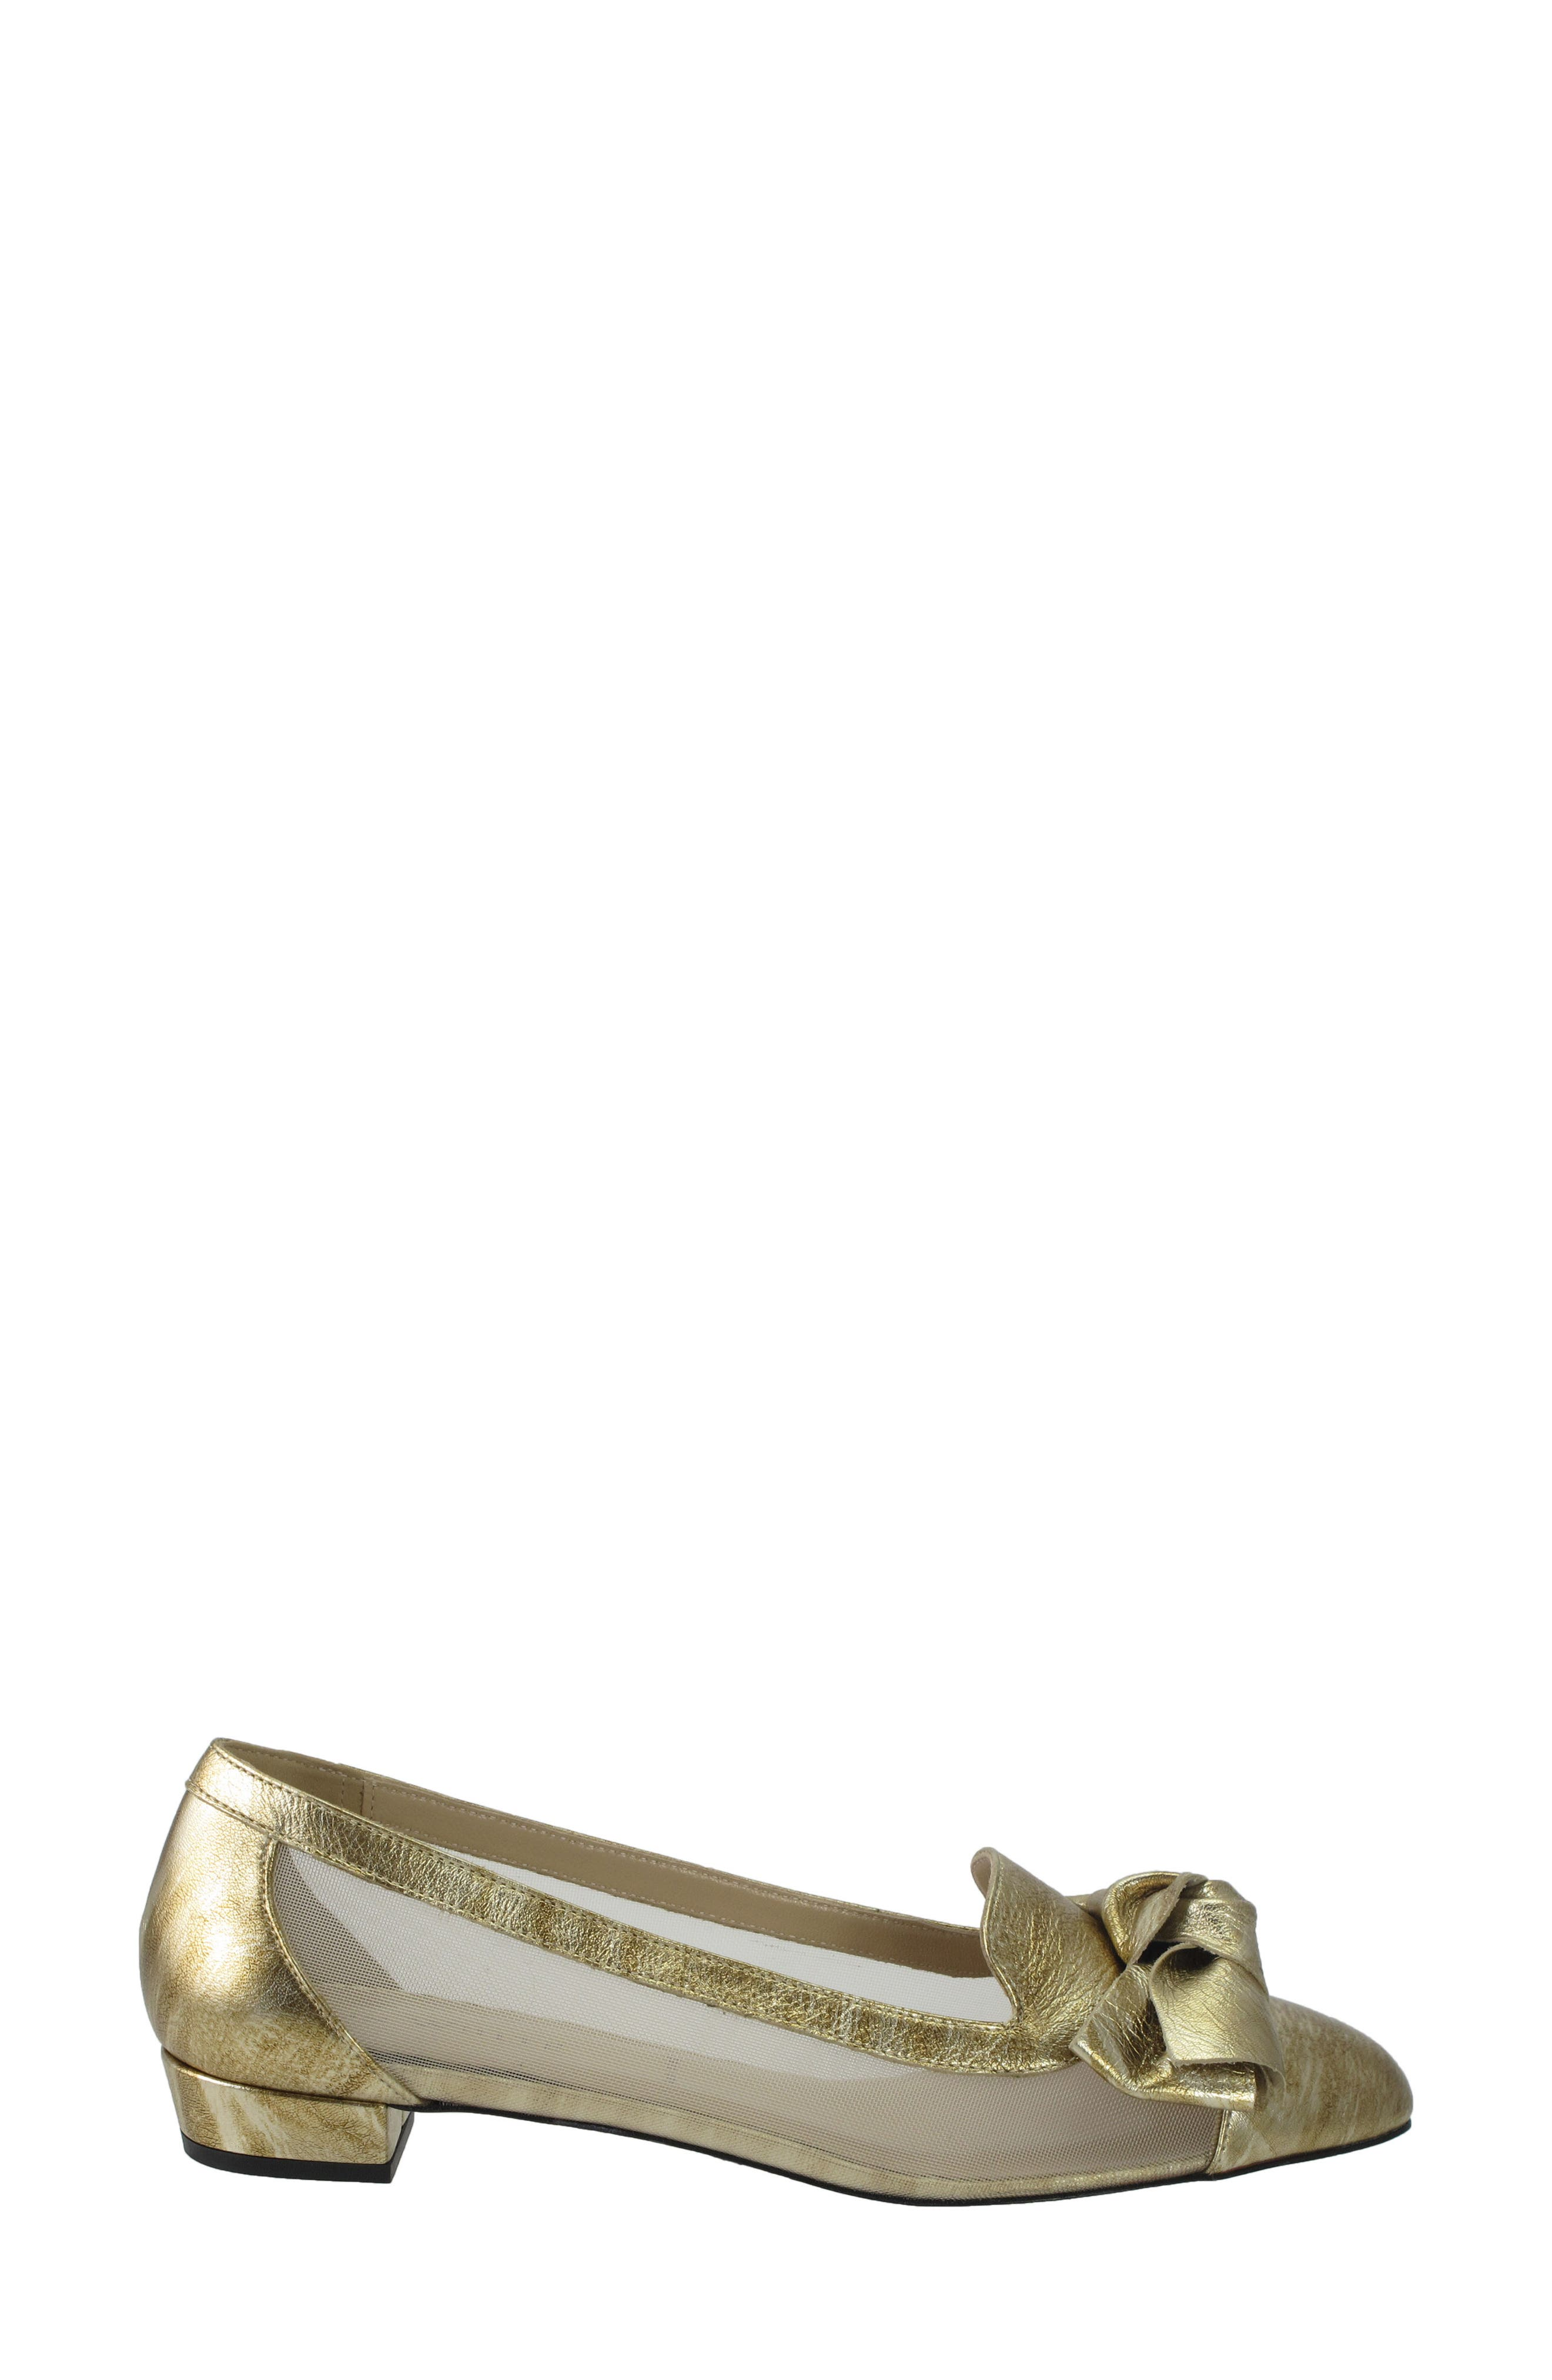 Hetti Bow Pump,                             Alternate thumbnail 4, color,                             Rose Gold Leather